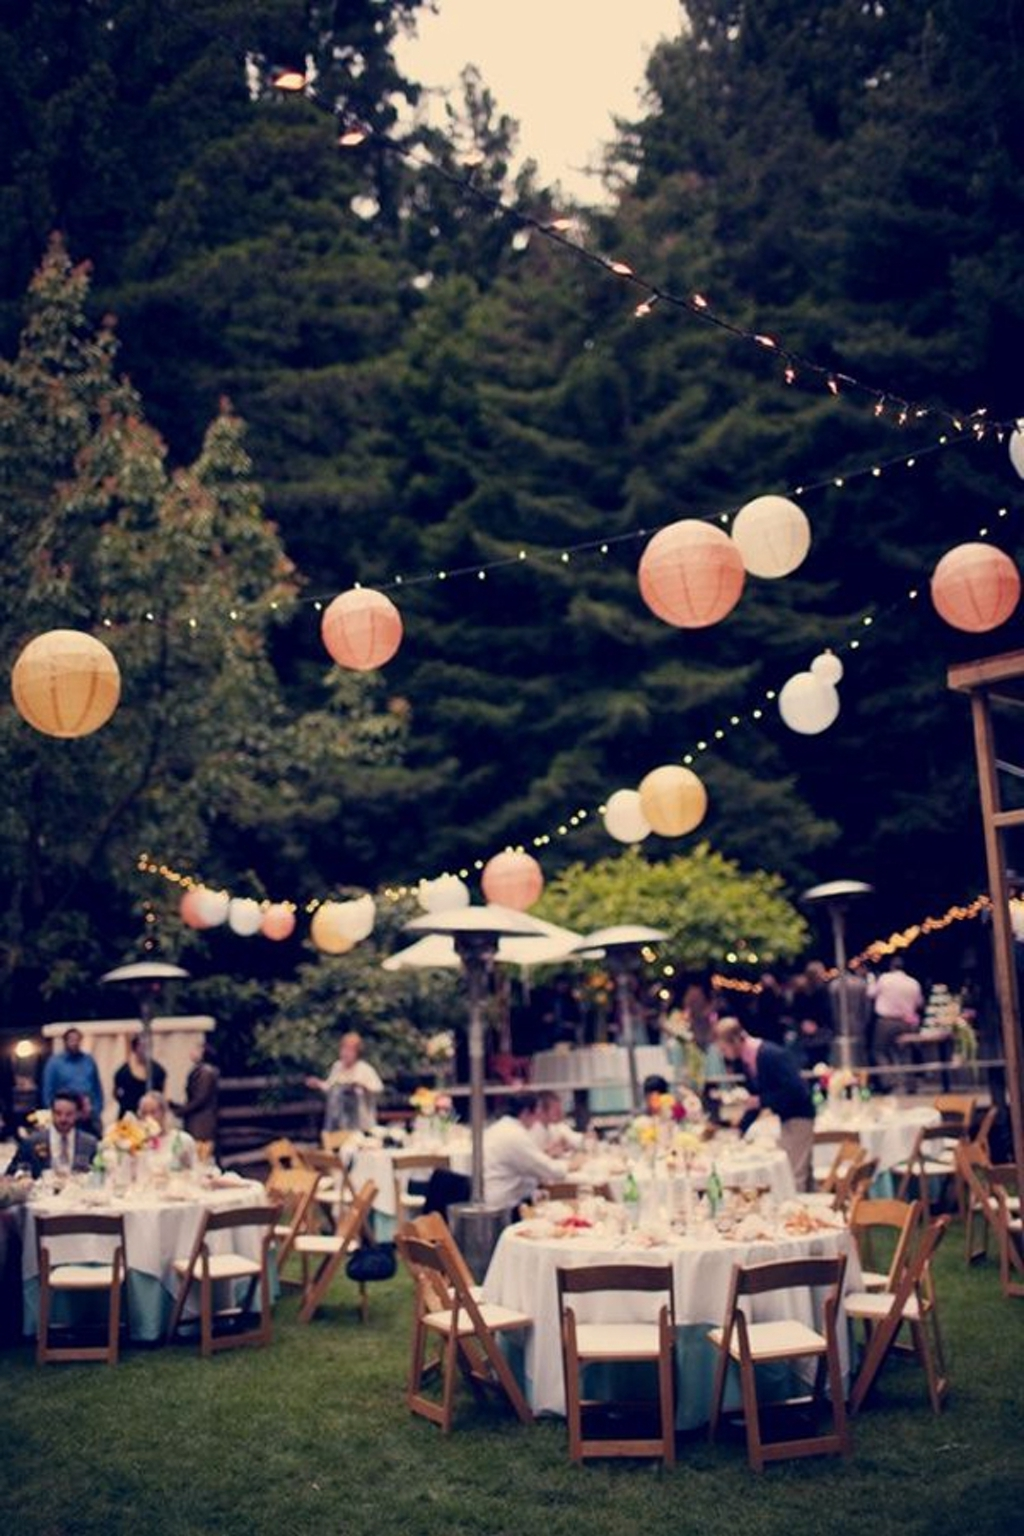 Outdoor Lanterns For Wedding Throughout Most Up To Date Lighting: Outdoor Wedding Reception With Lanterns – 20 Beautiful (View 15 of 20)